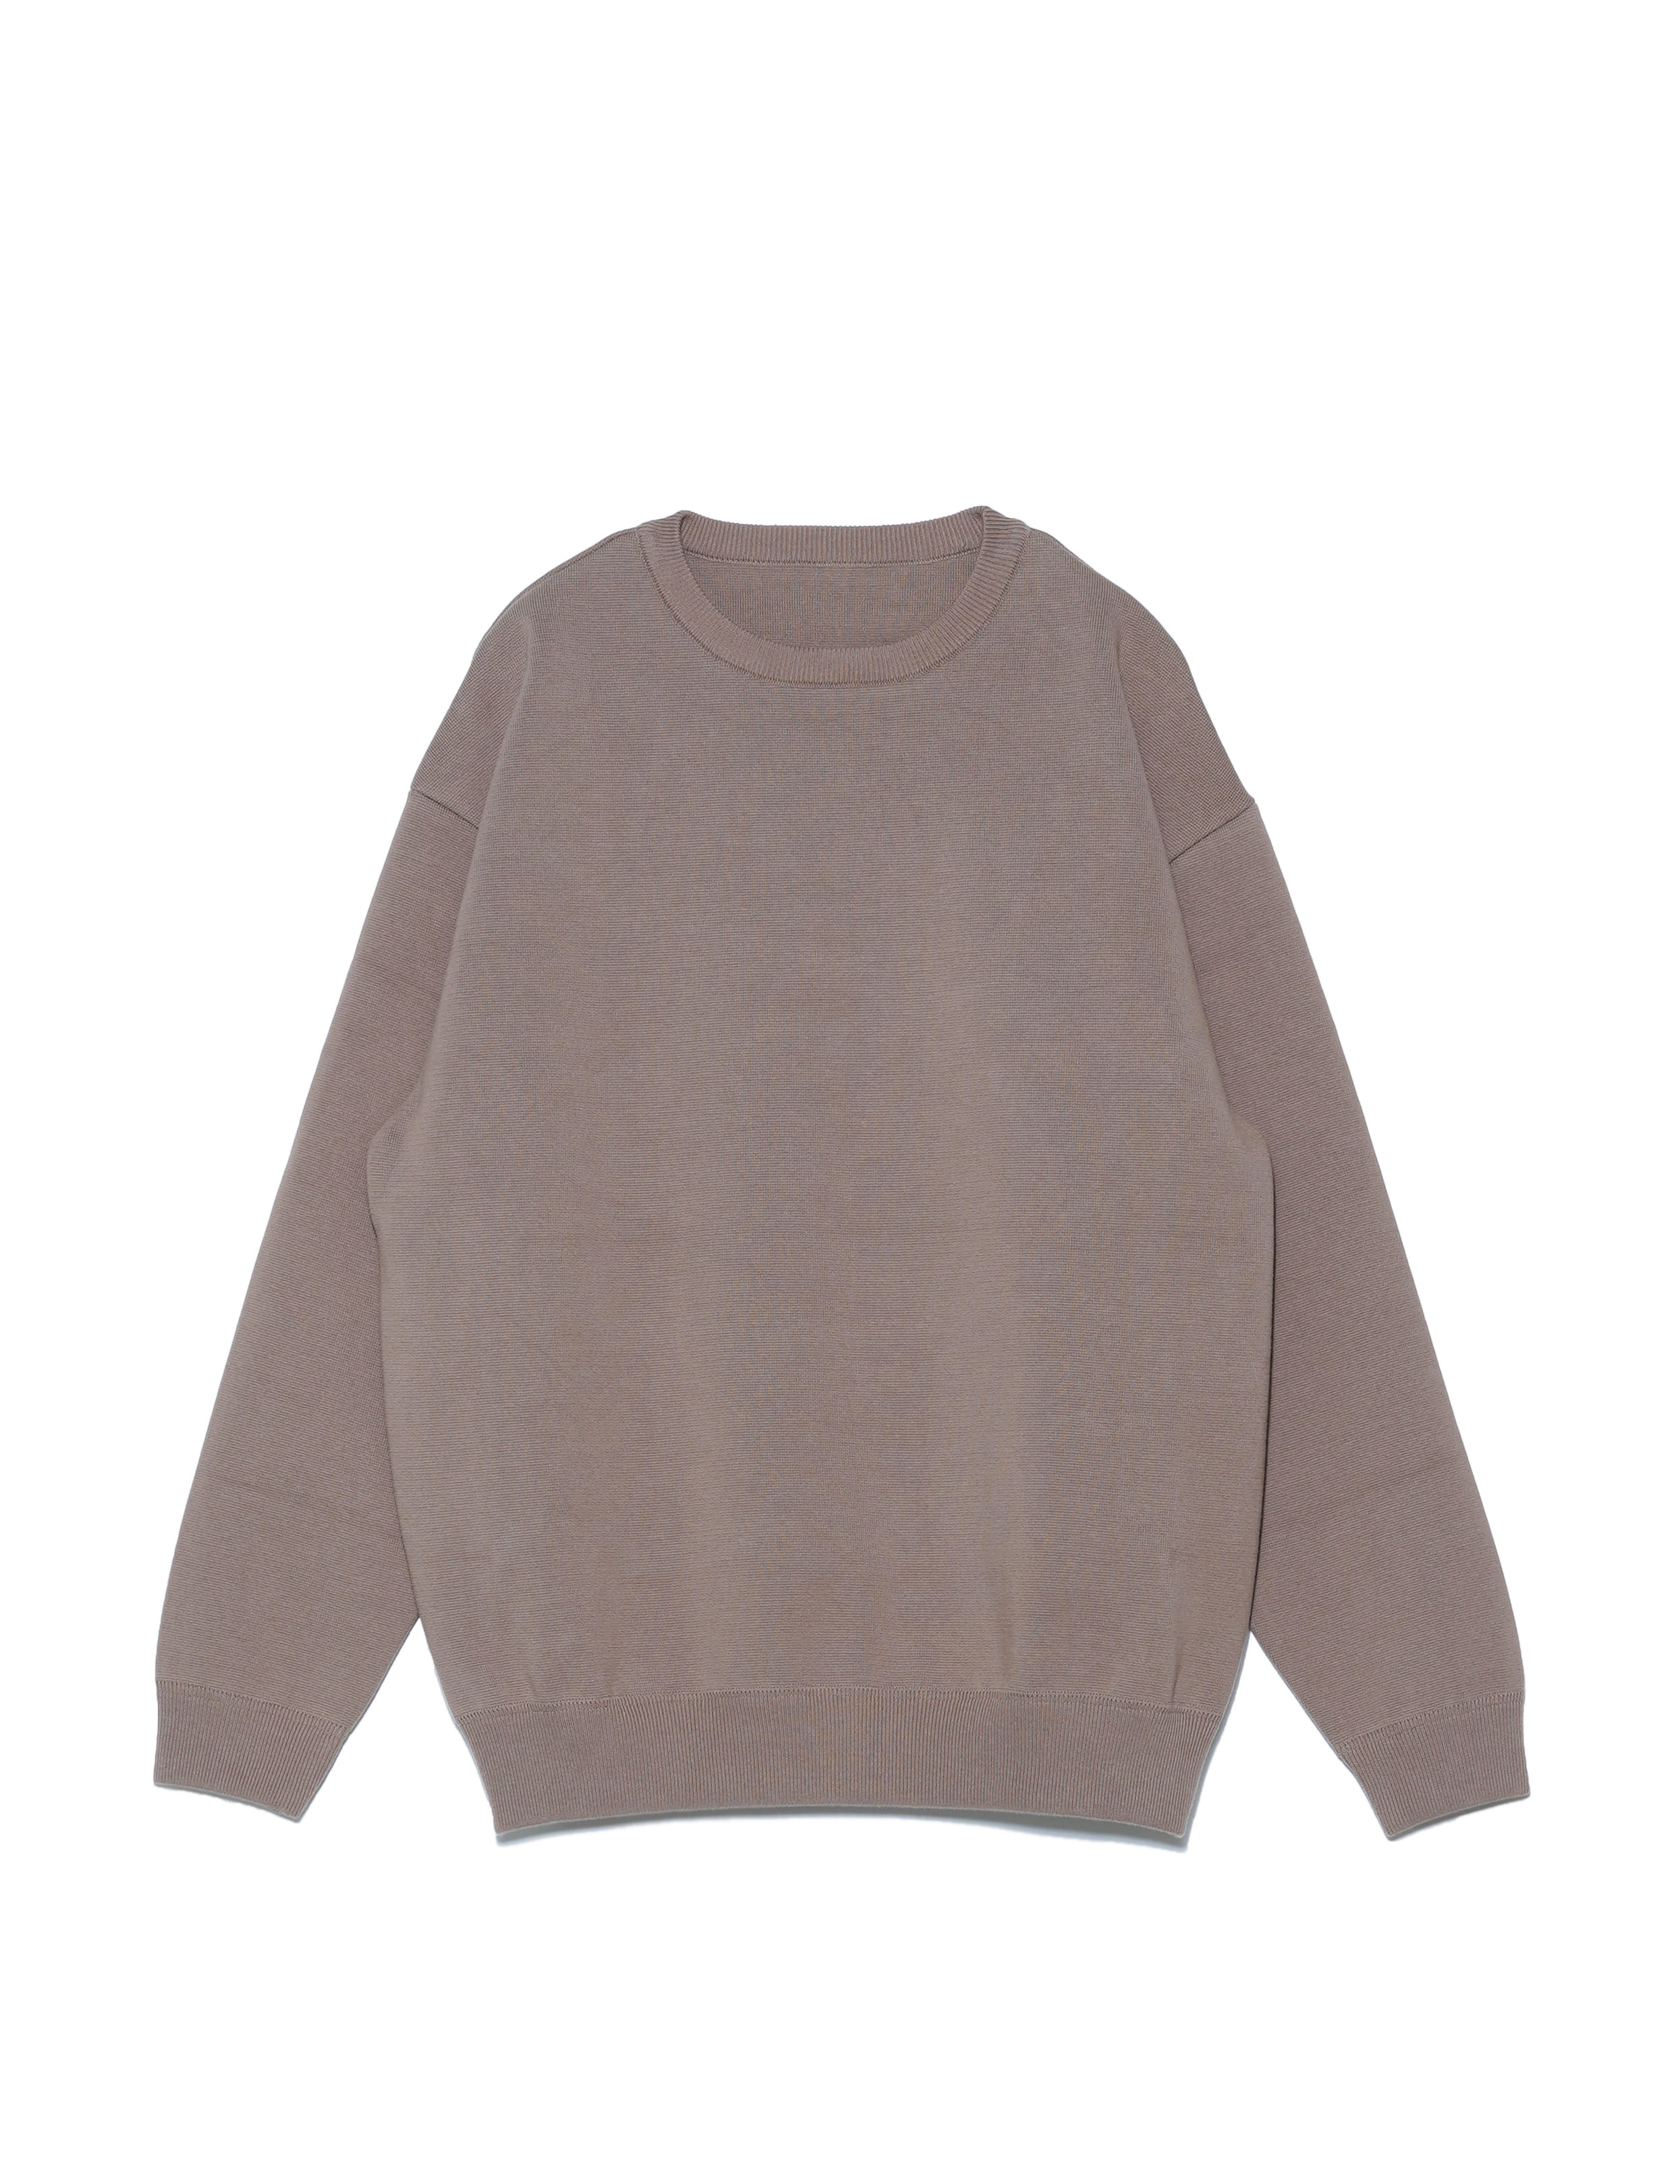 MILANO RIB CREWNECK P/O (BROWN)